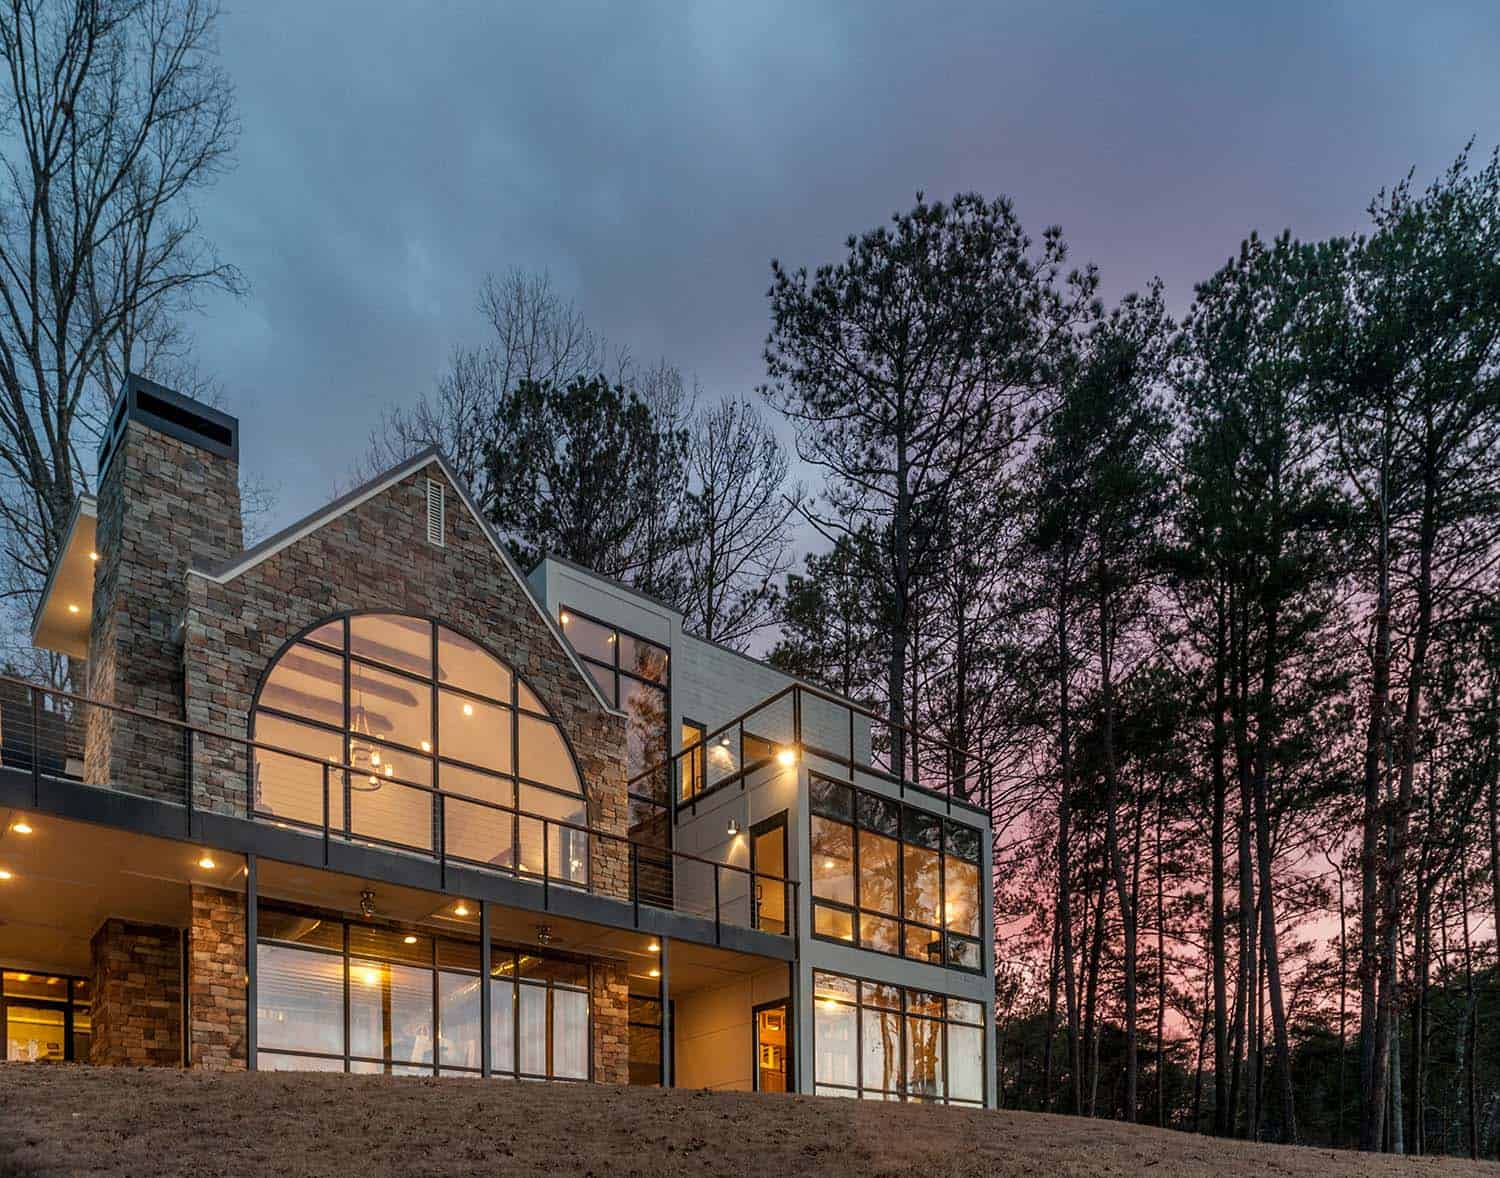 Modern Lake House In Alabama Blends Well Into Its Surroundings